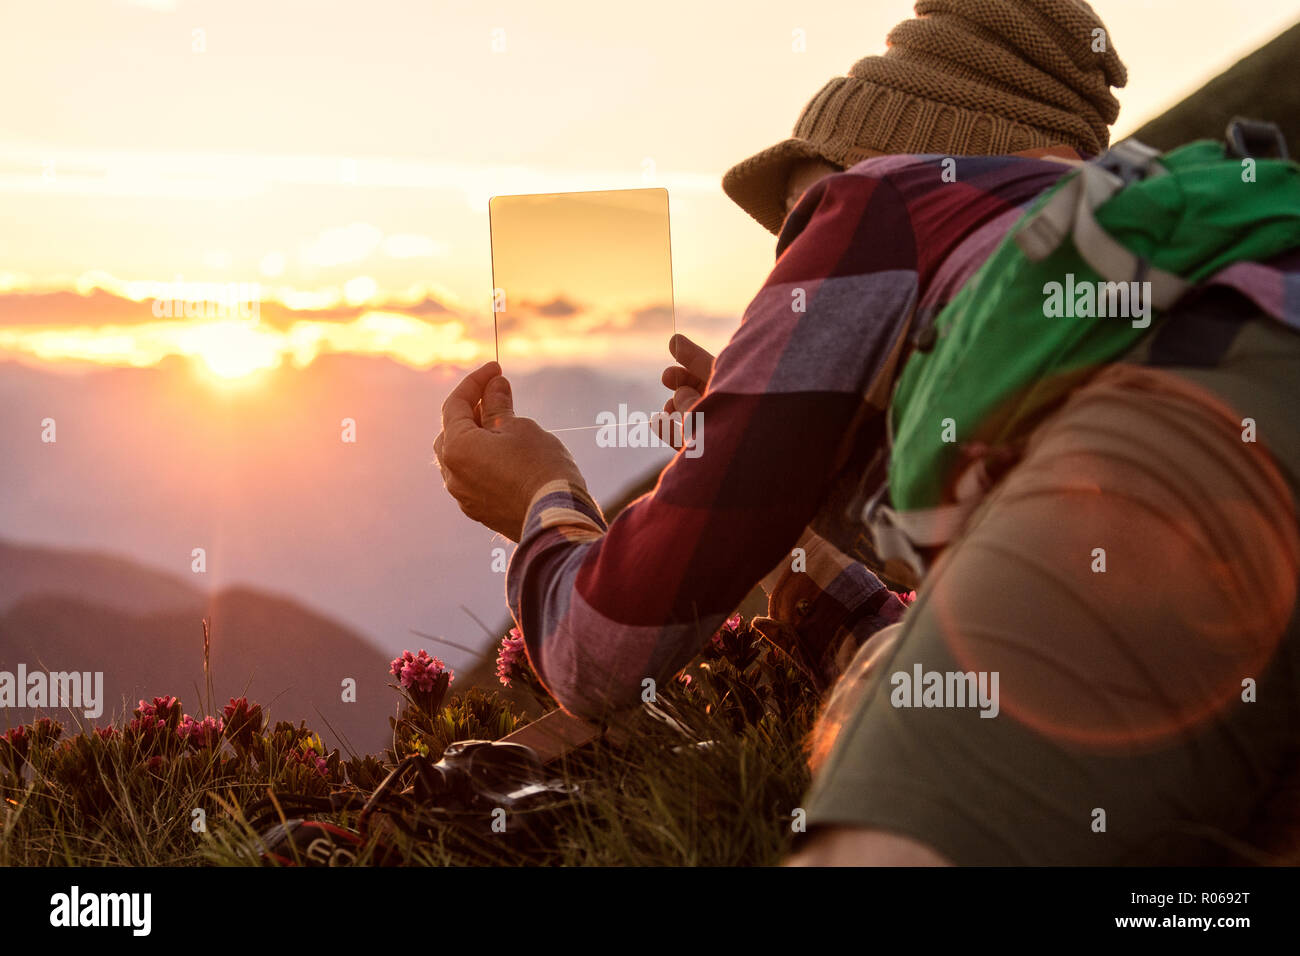 Man at sunset with graduated photography filters in his hand, San Marco Pass, Orobie Alps, Bergamo province, Lombardy, Italy, Europe - Stock Image